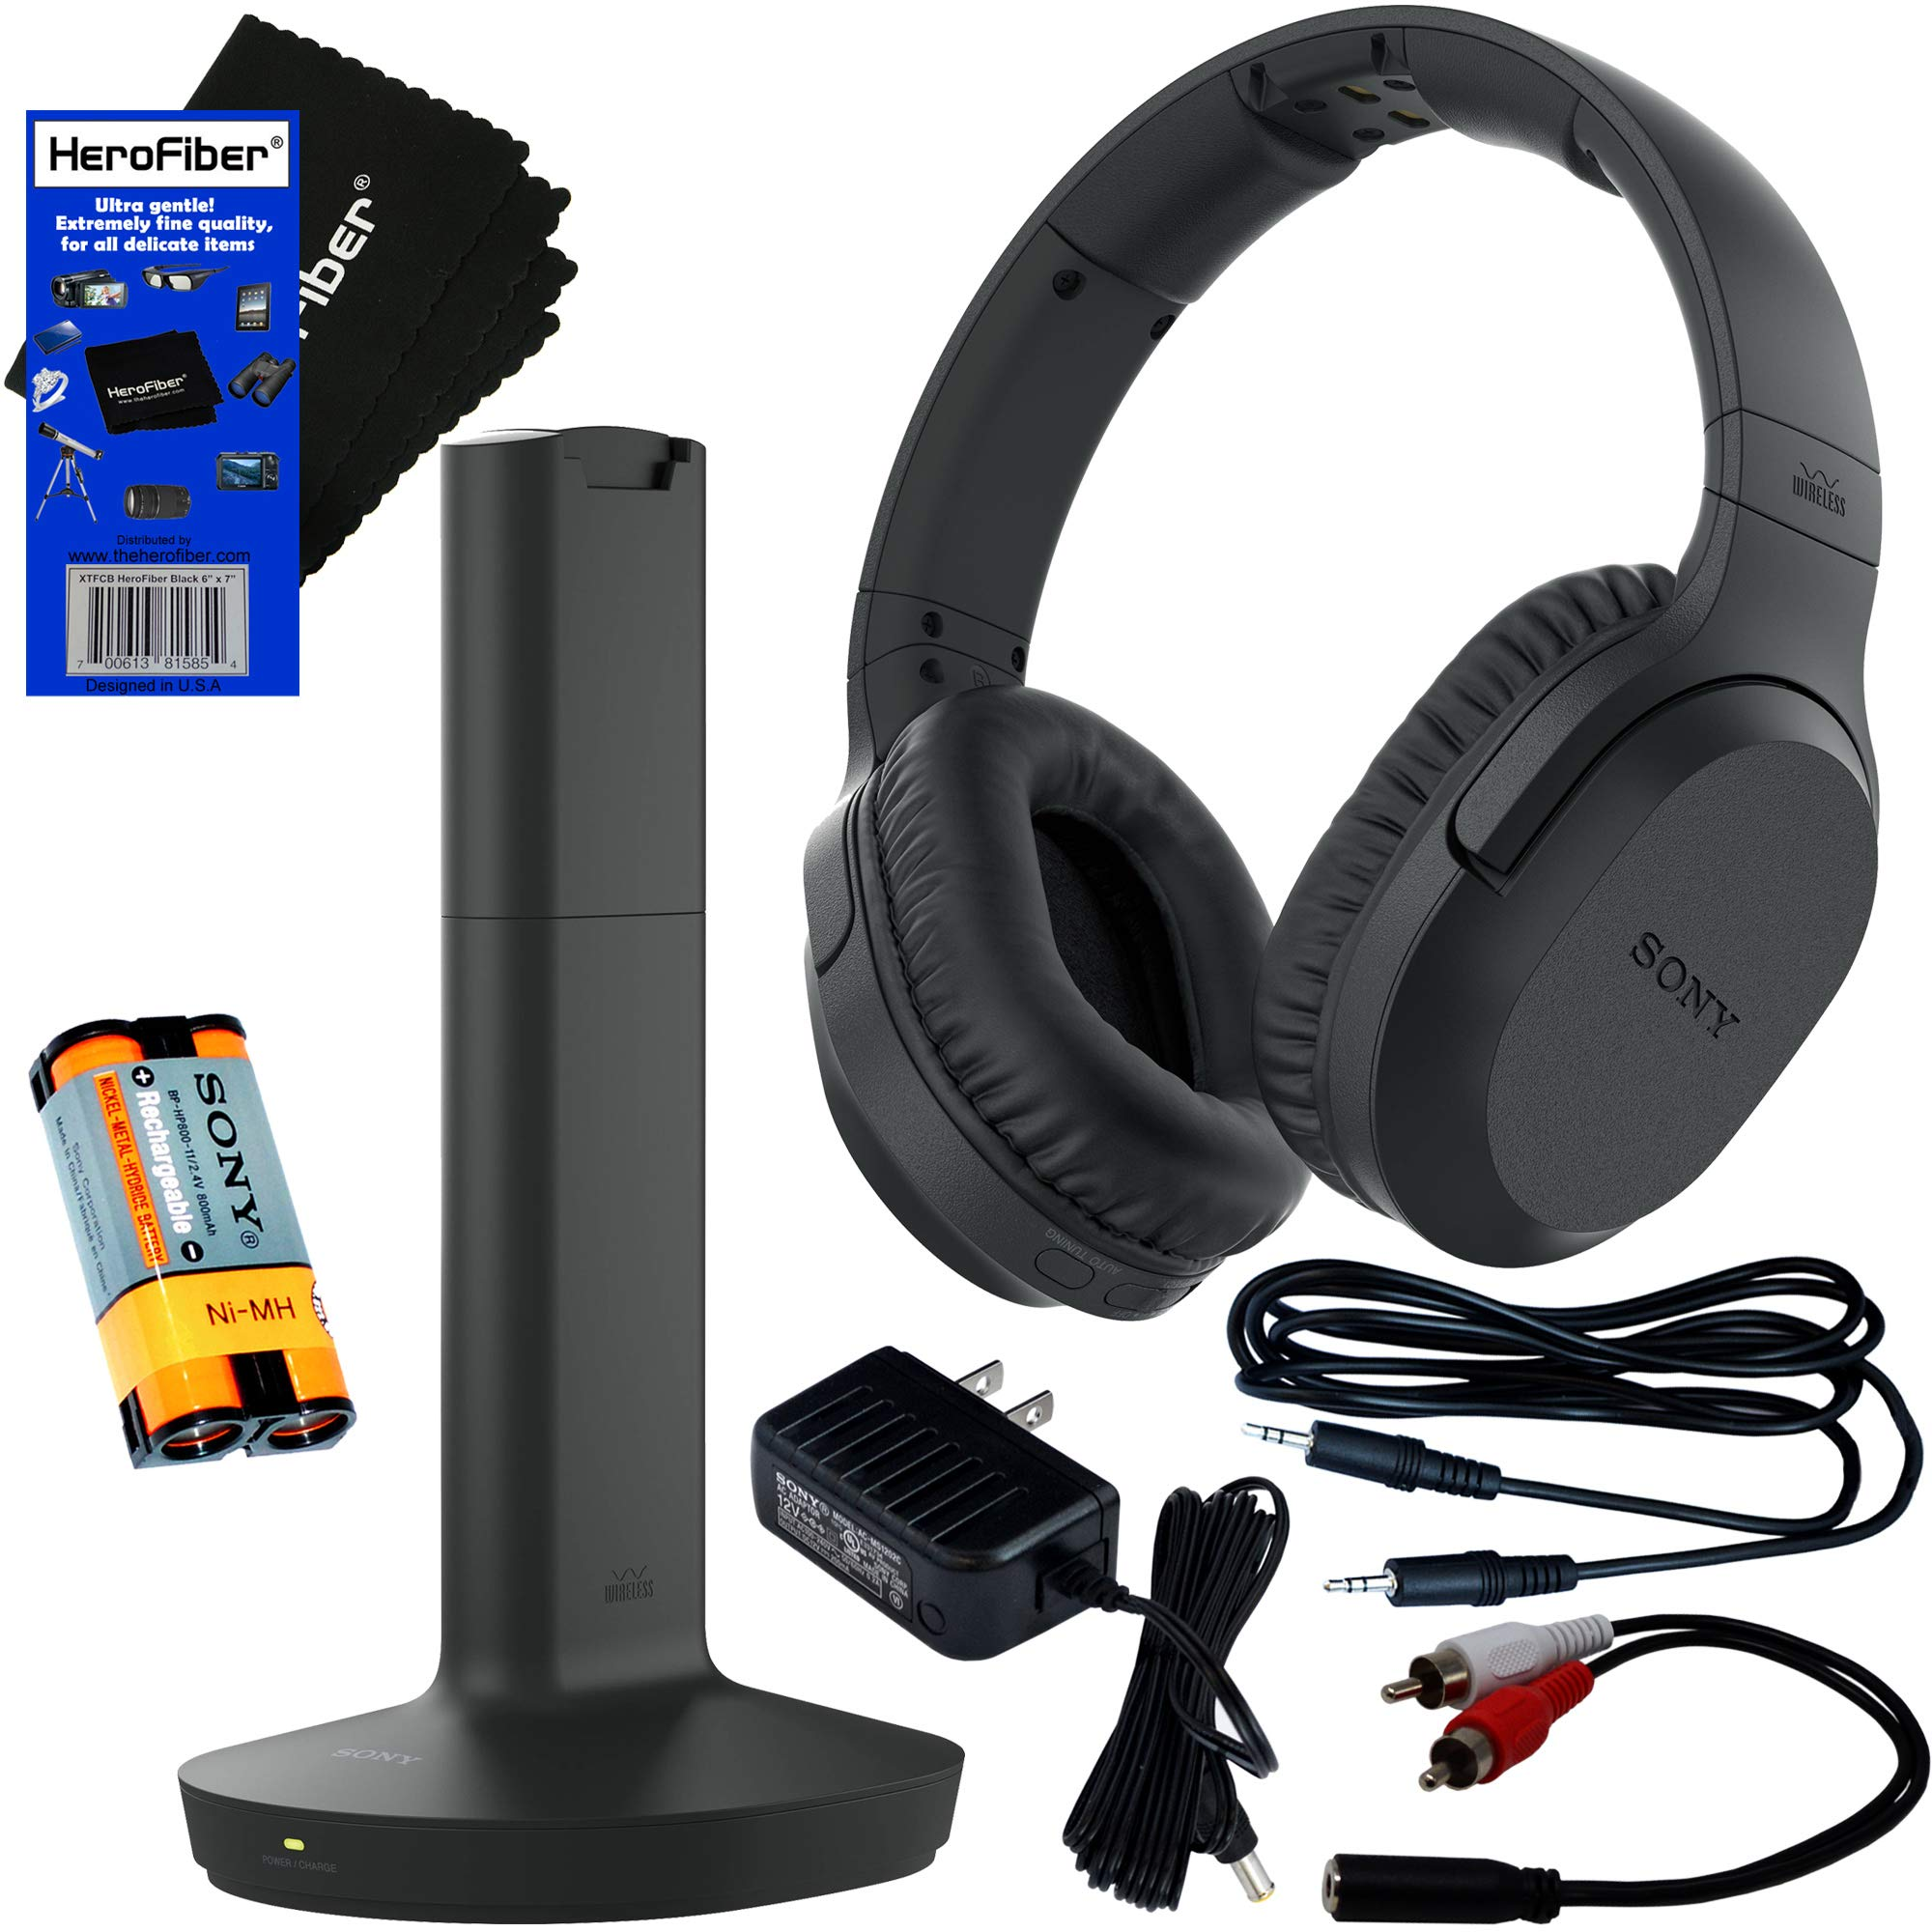 Sony Wireless Over-Ear Noise Reduction Headphones (WHRF400R) with Transmitter Dock (TMRRF400) + Sony Rechargeable Battery + Connecting Cables + AC Adaptor + HeroFiber Cleaning Cloth by HeroFiber